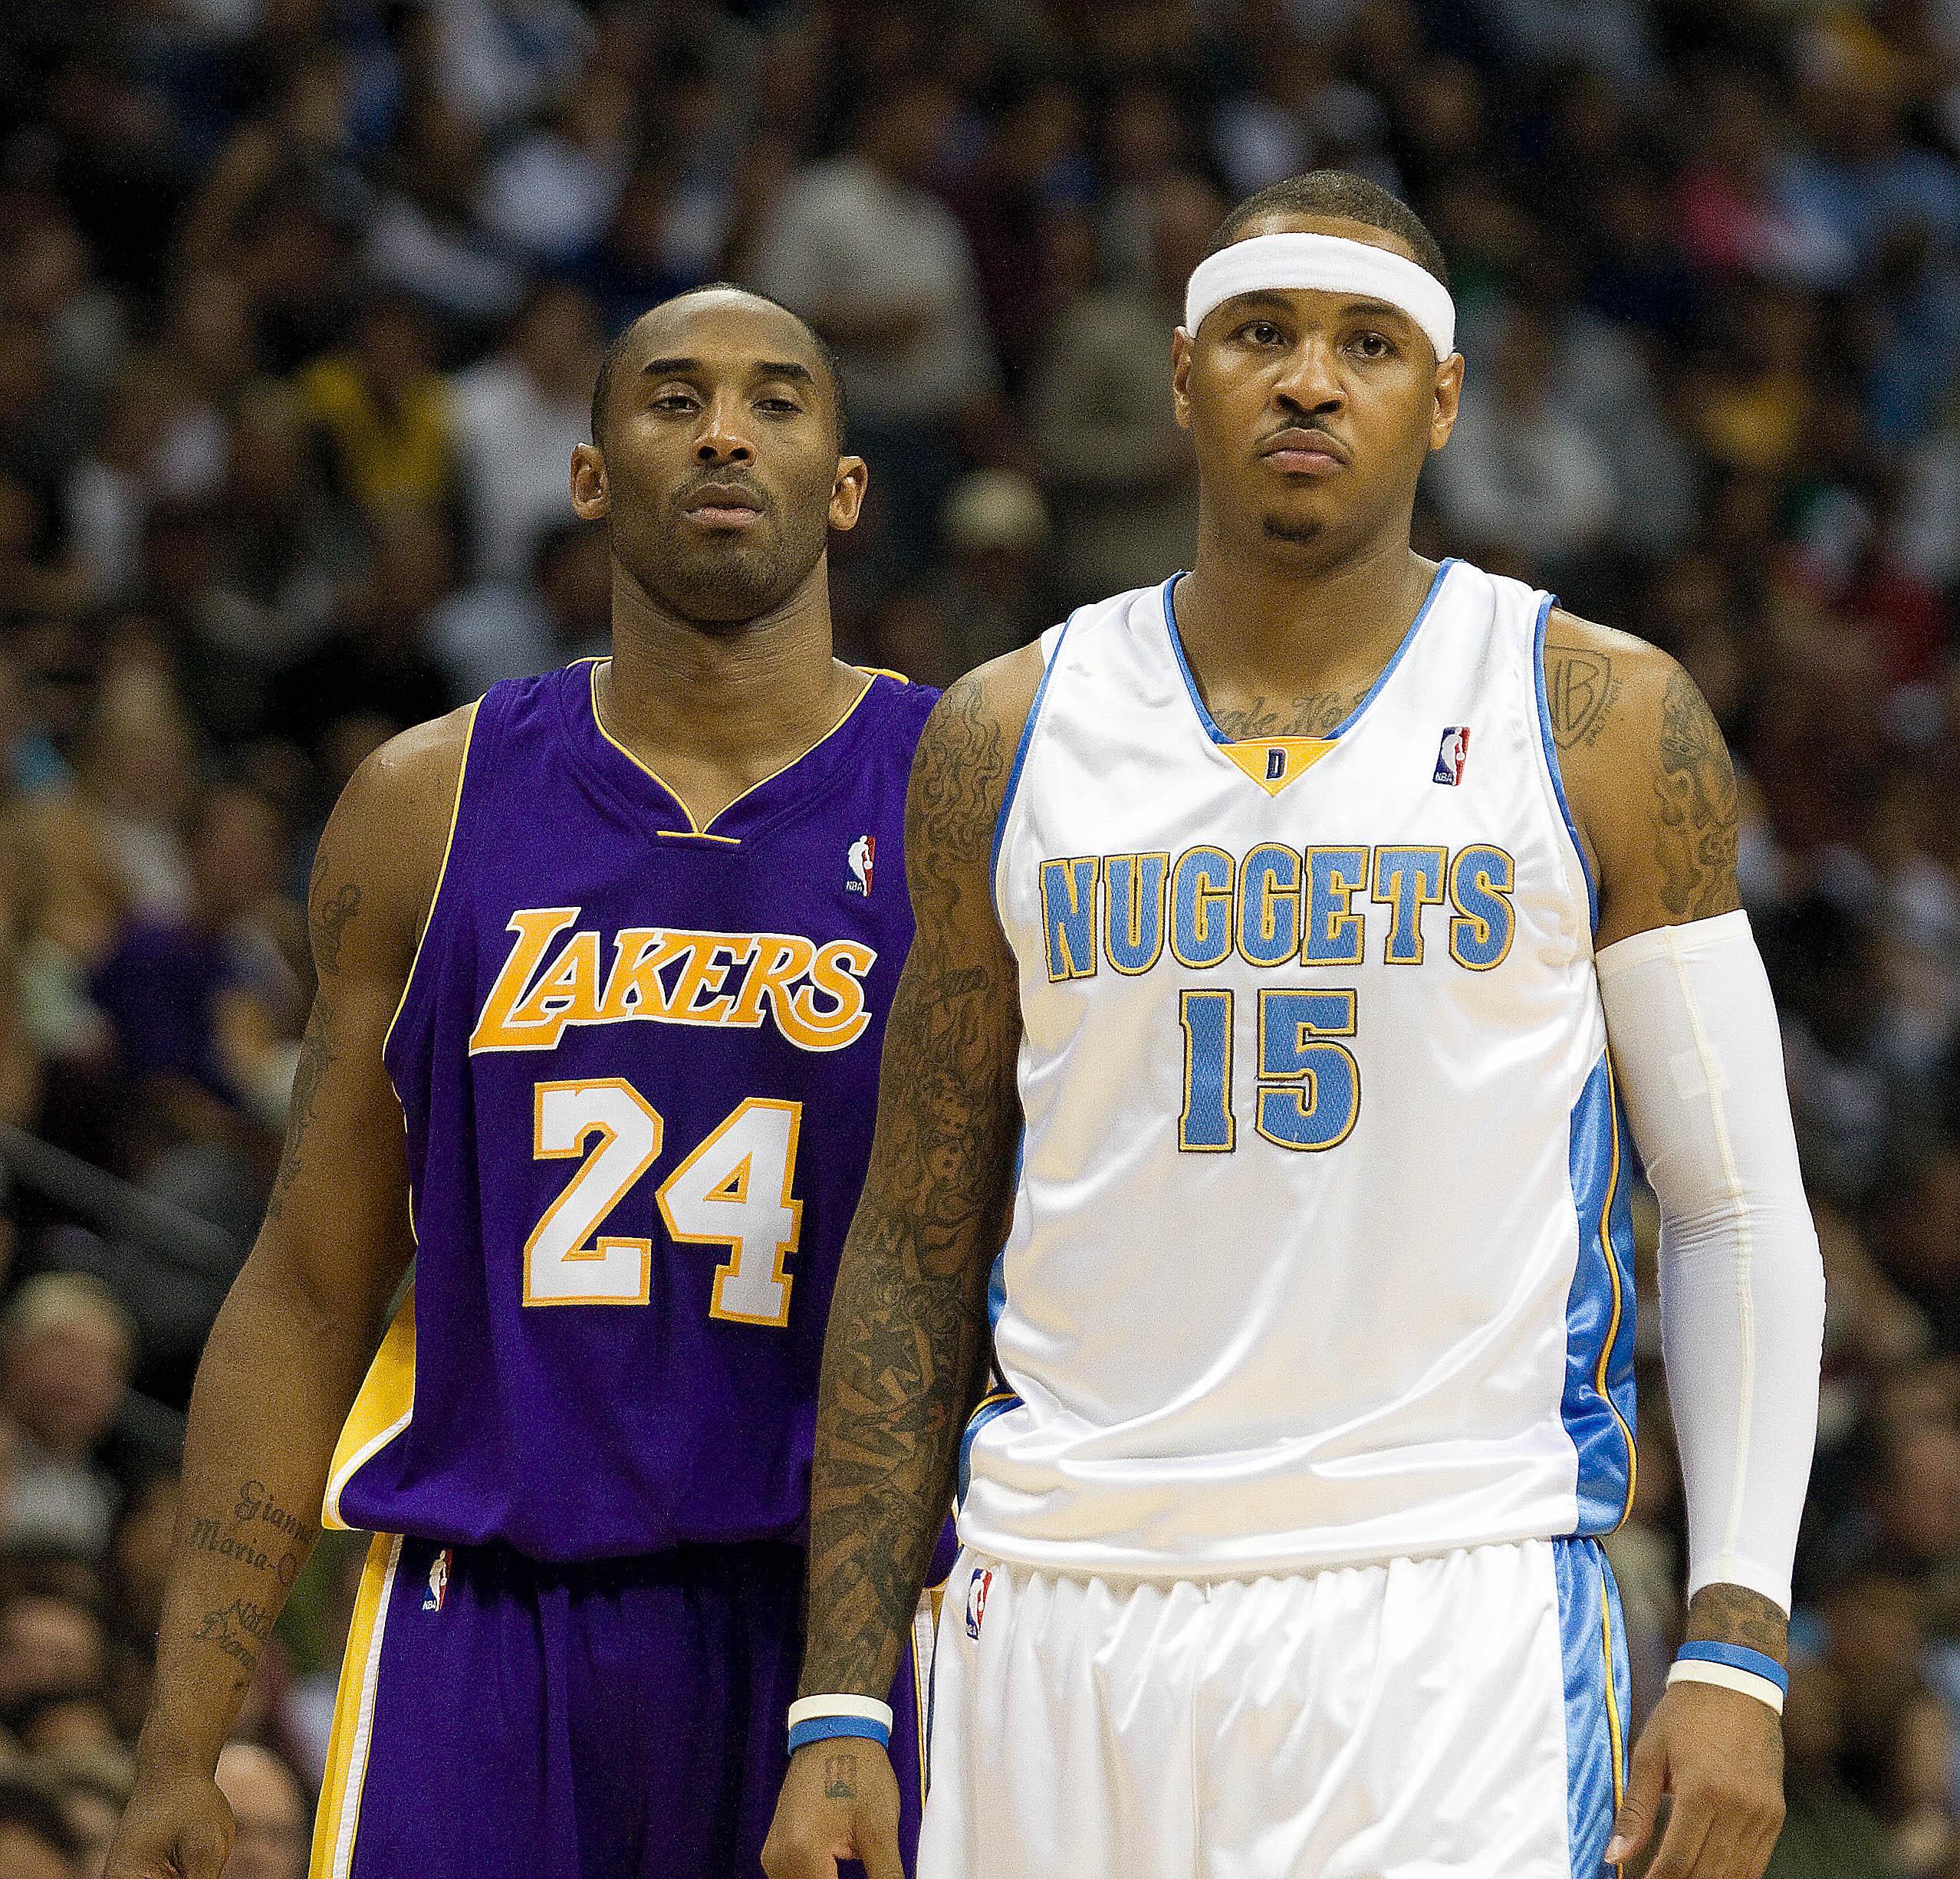 Can The Nuggets Beat The Lakers?